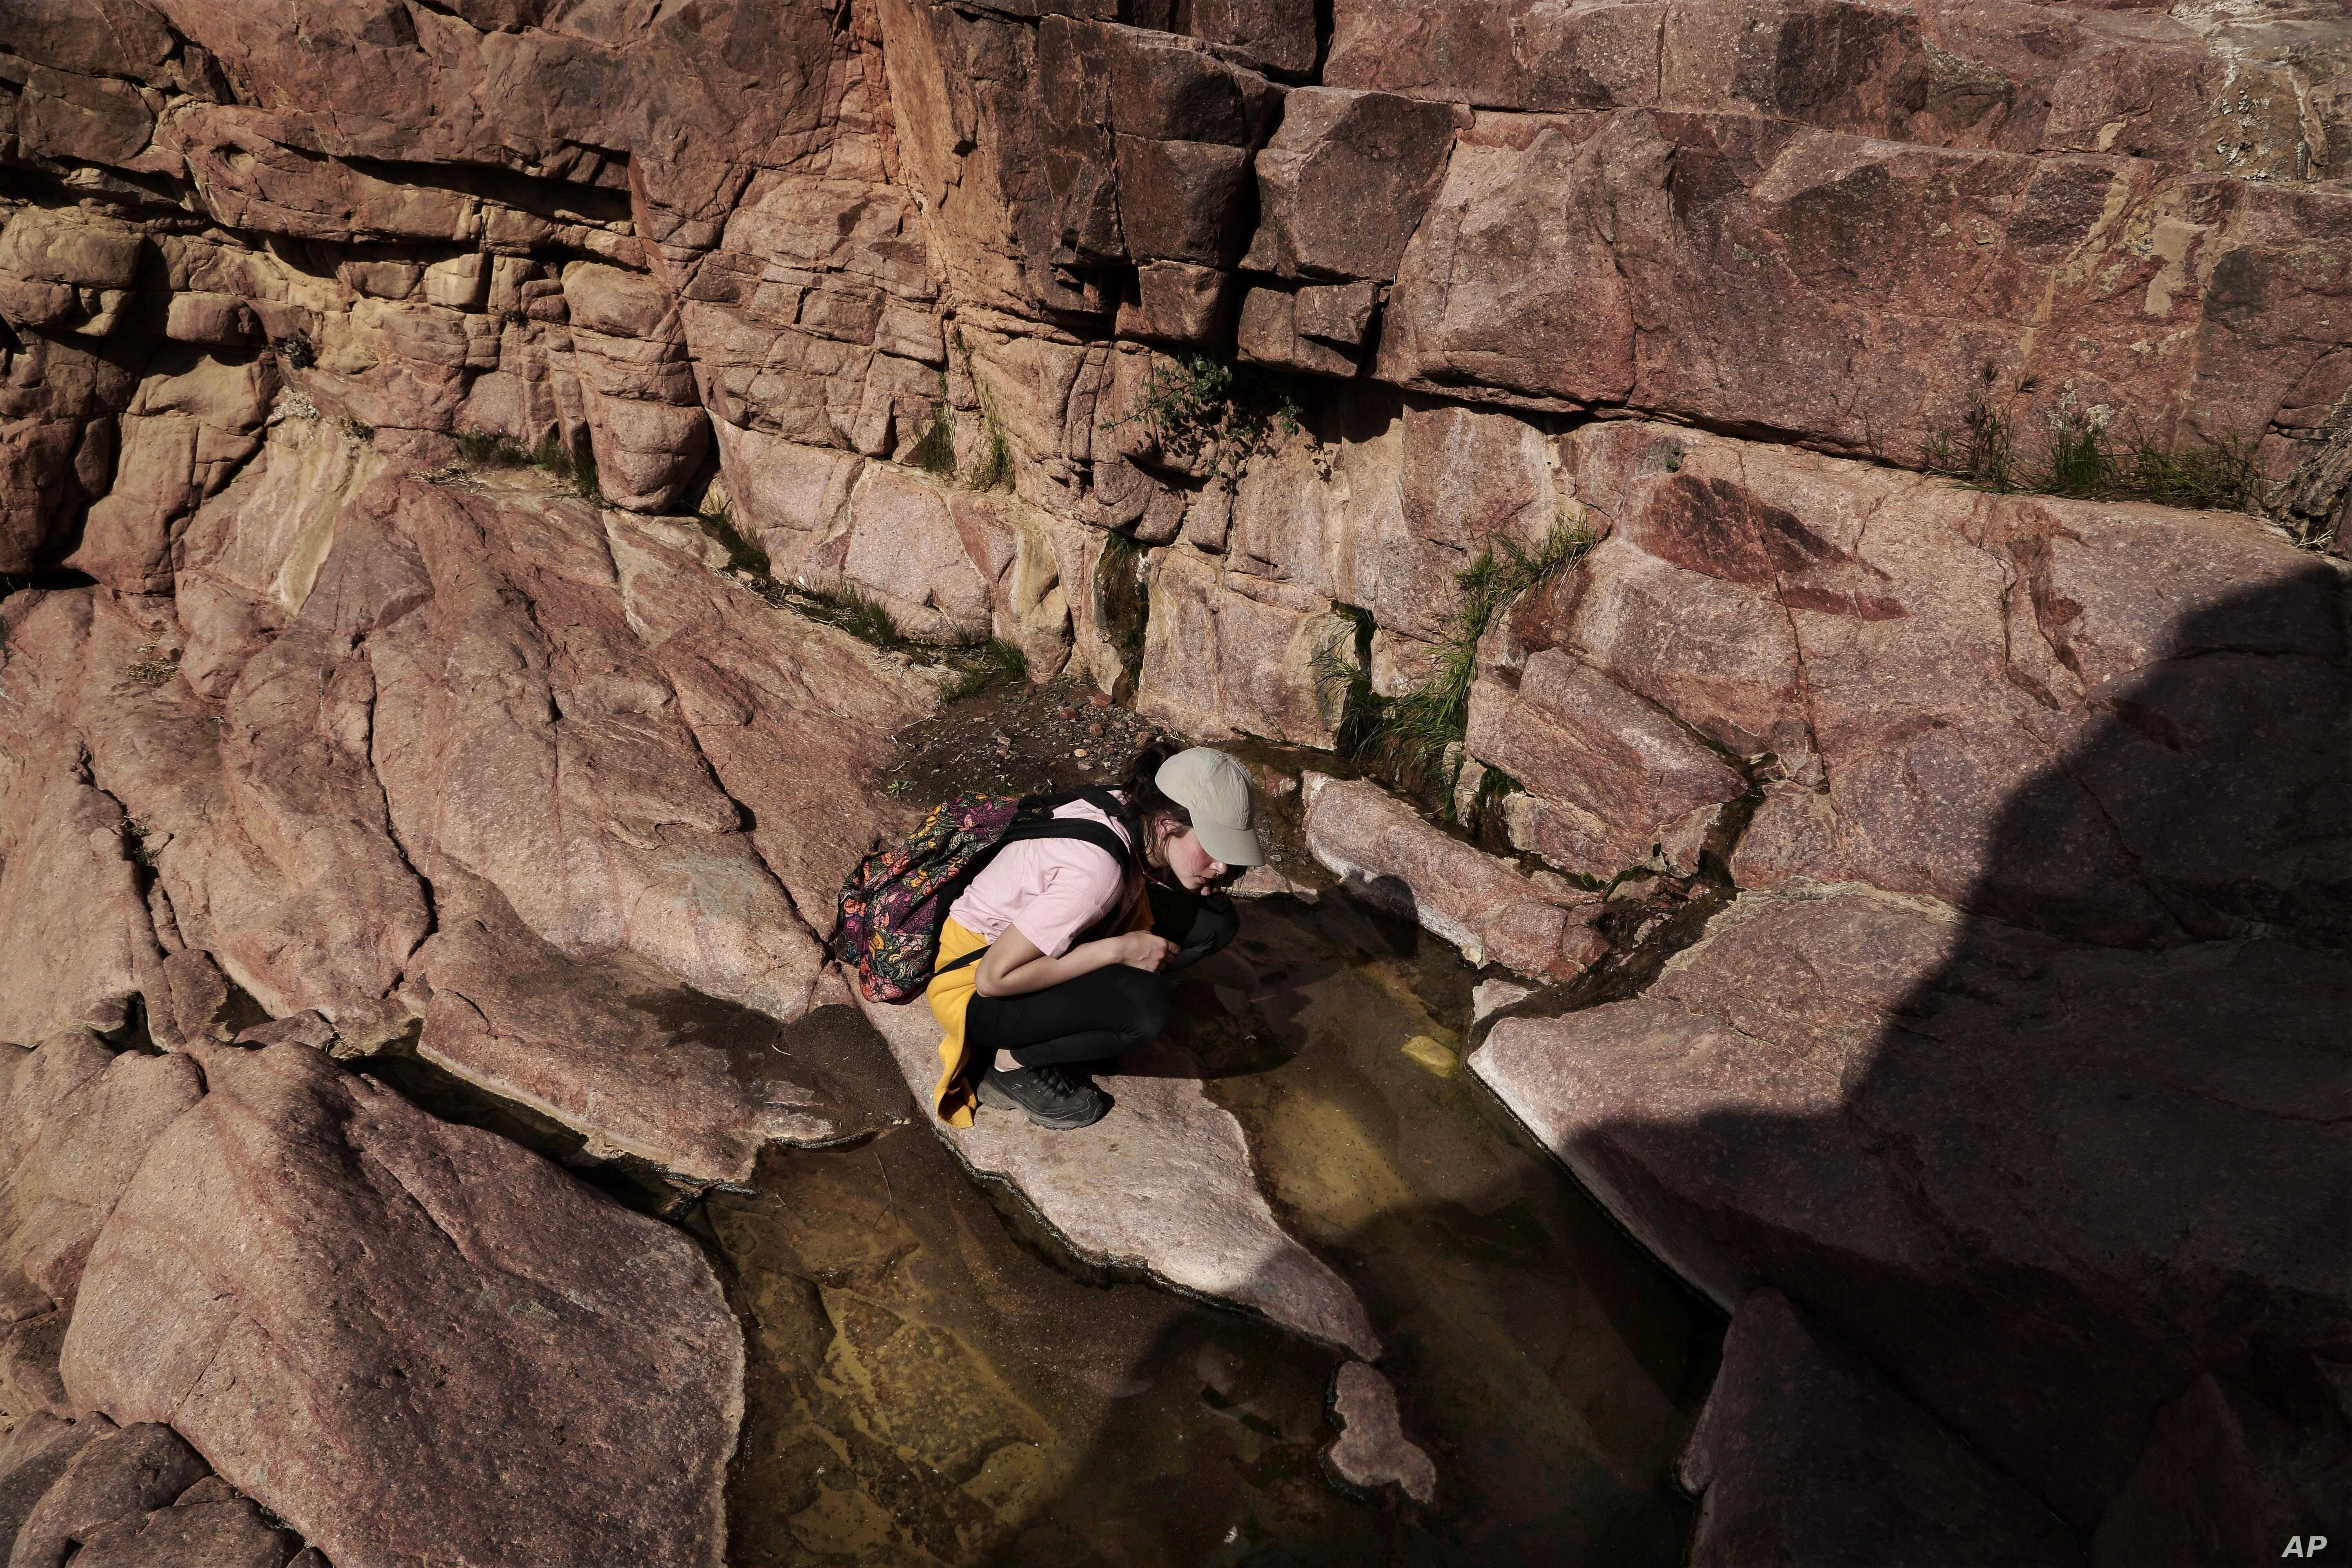 An Egyptian 21-year-old student on a trek looks at water remaining after a rainfall, in the mountains near Wadi Sahw, Abu Zenima, in South Sinai, Egypt, March 29, 2019.